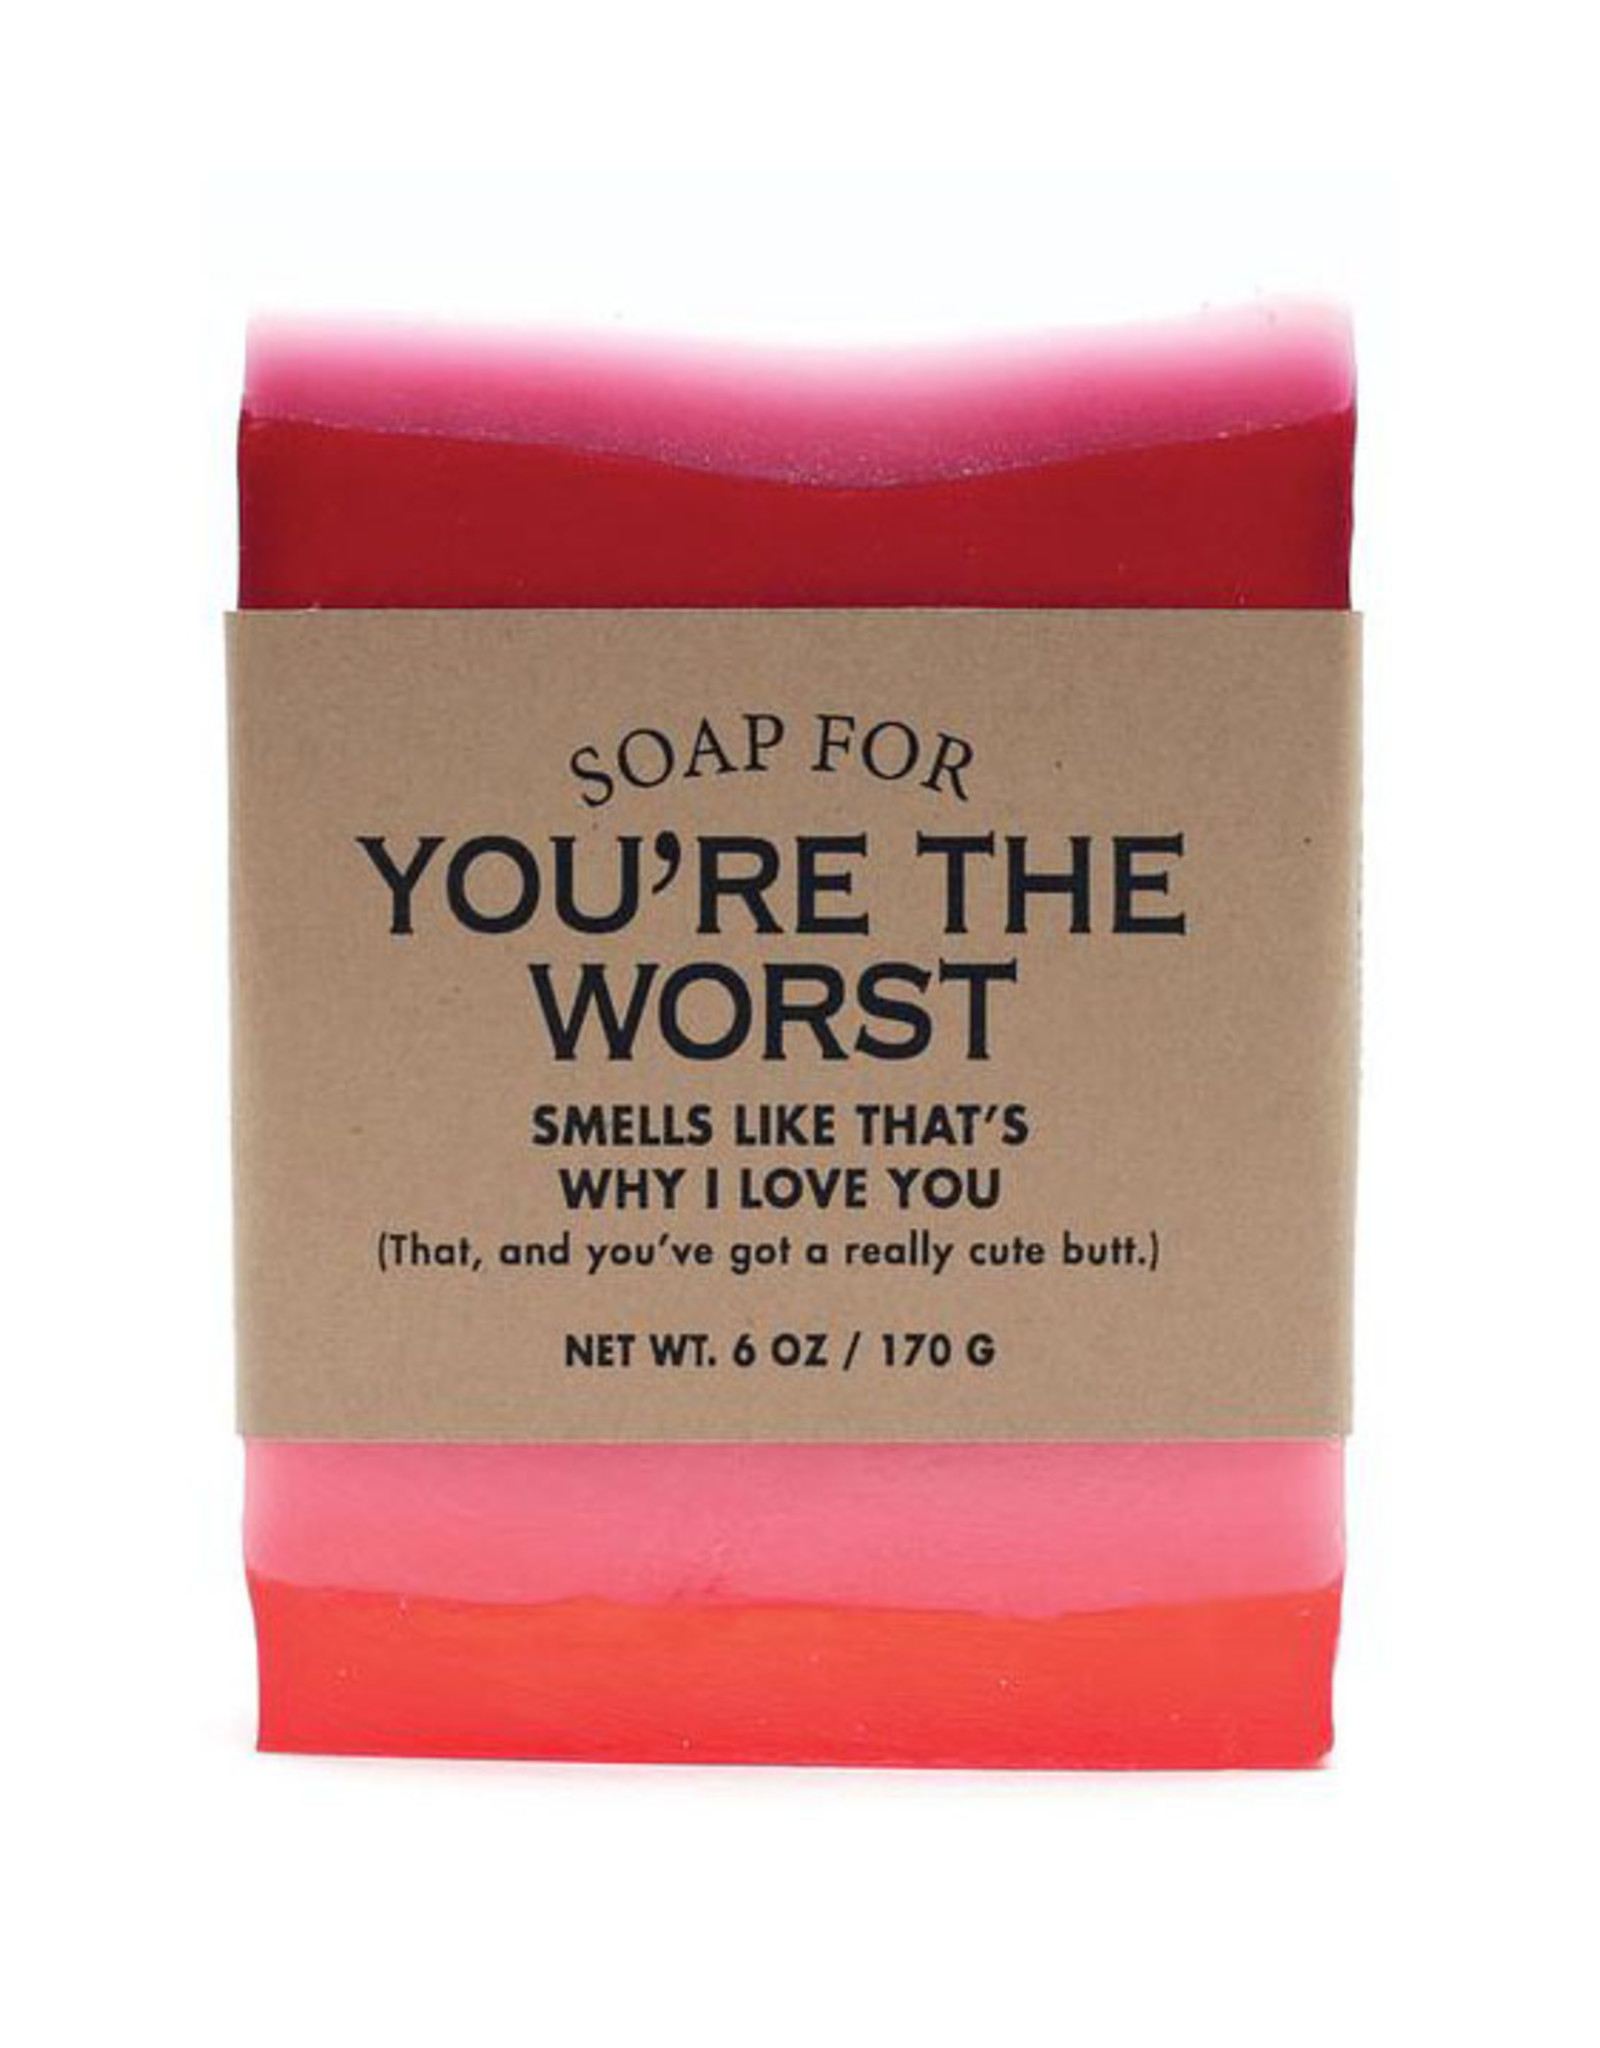 A Soap for You're The Worst